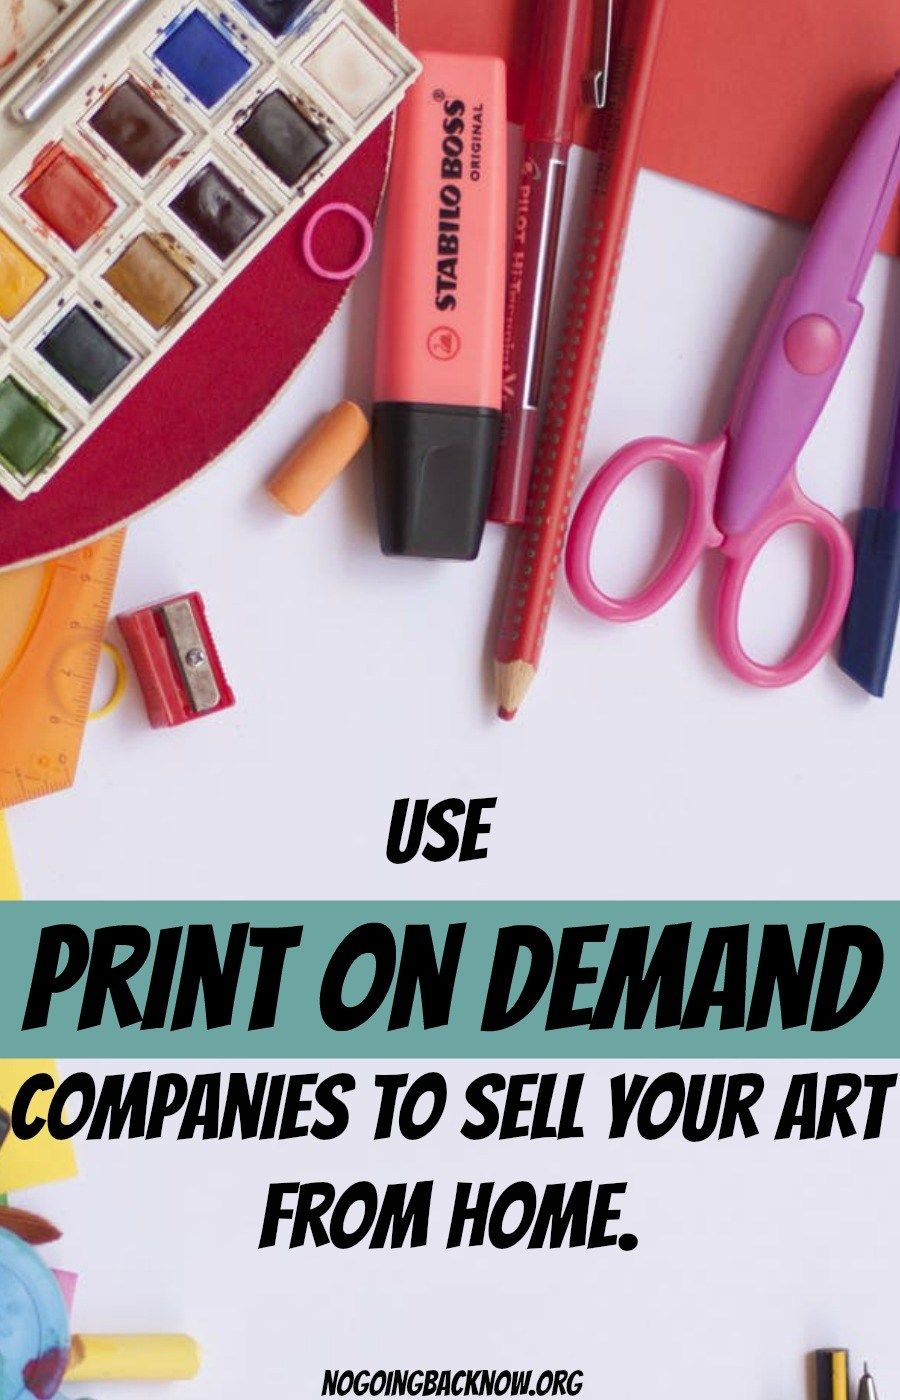 Print On Demand To Sell Your Art Things to sell, Sell